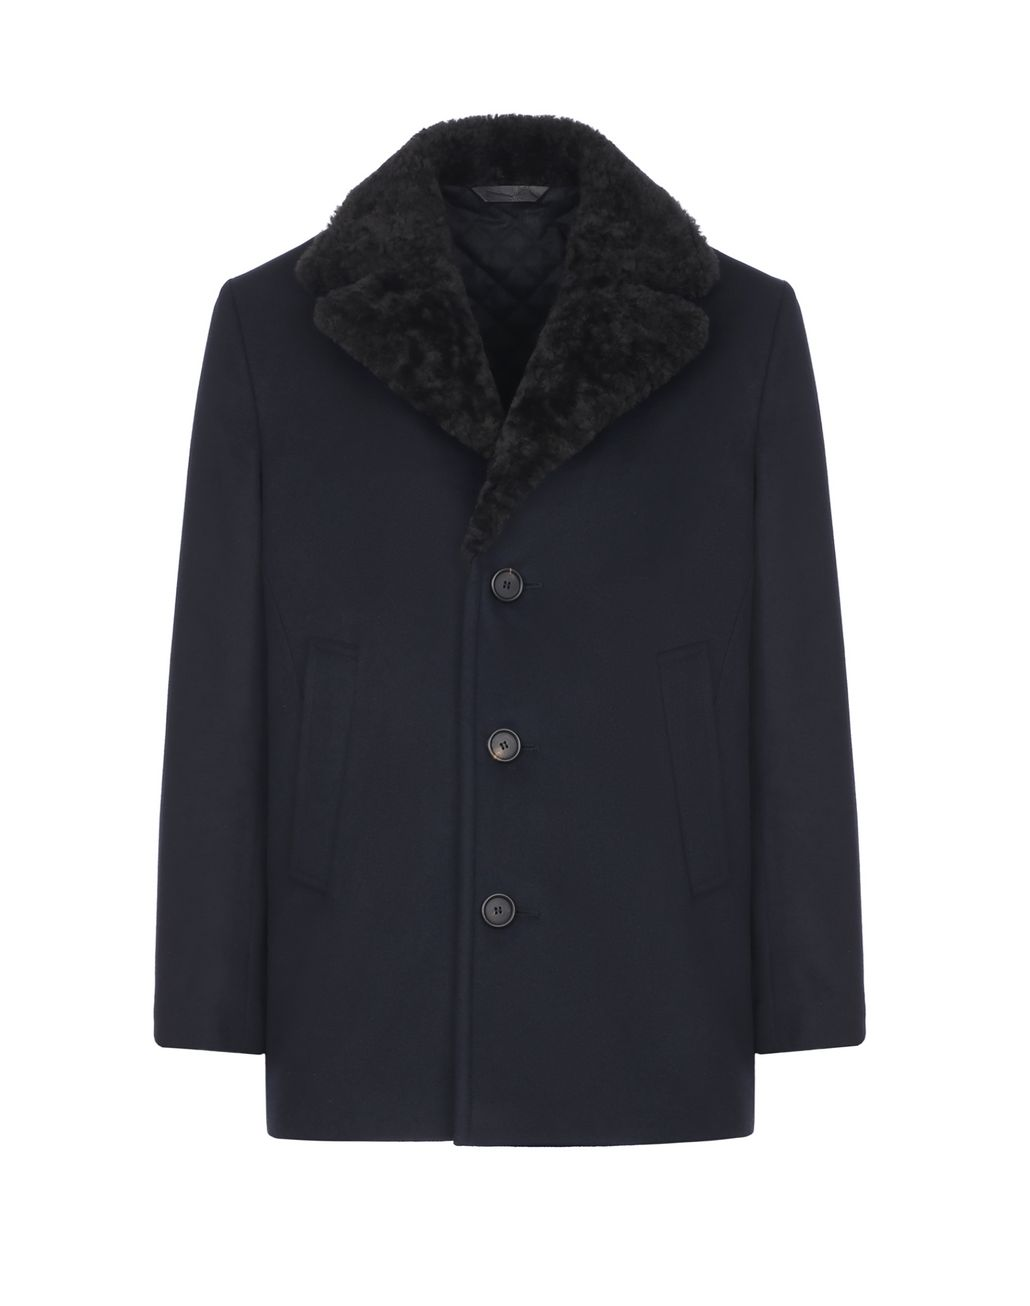 BRIONI Blue Caban with Shearling Collar Coats & Raincoats Man f